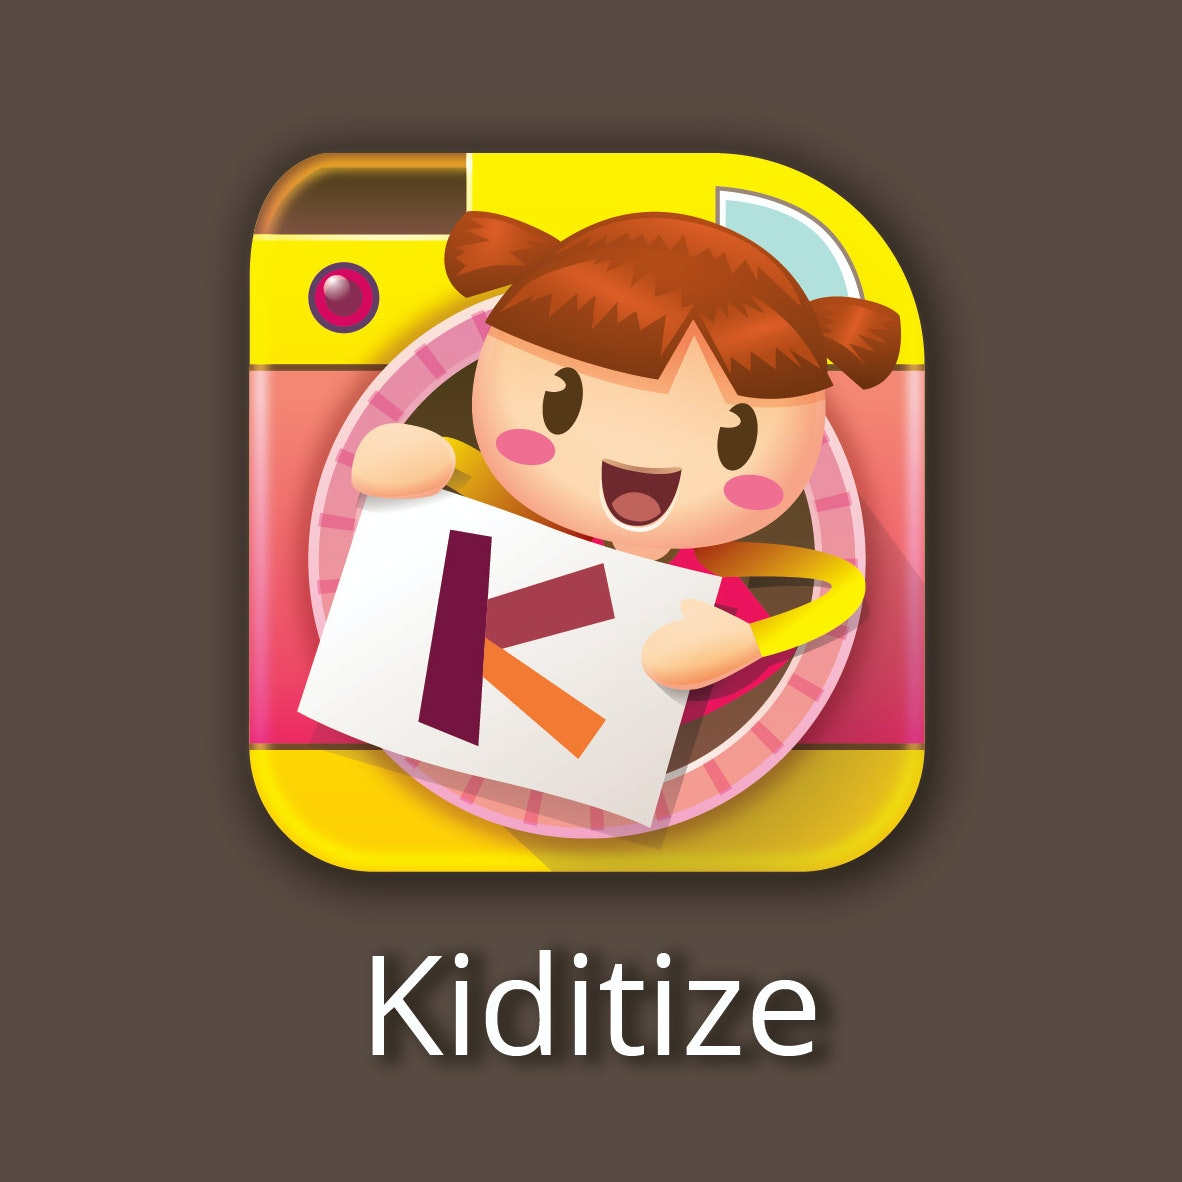 Kiditize logo design